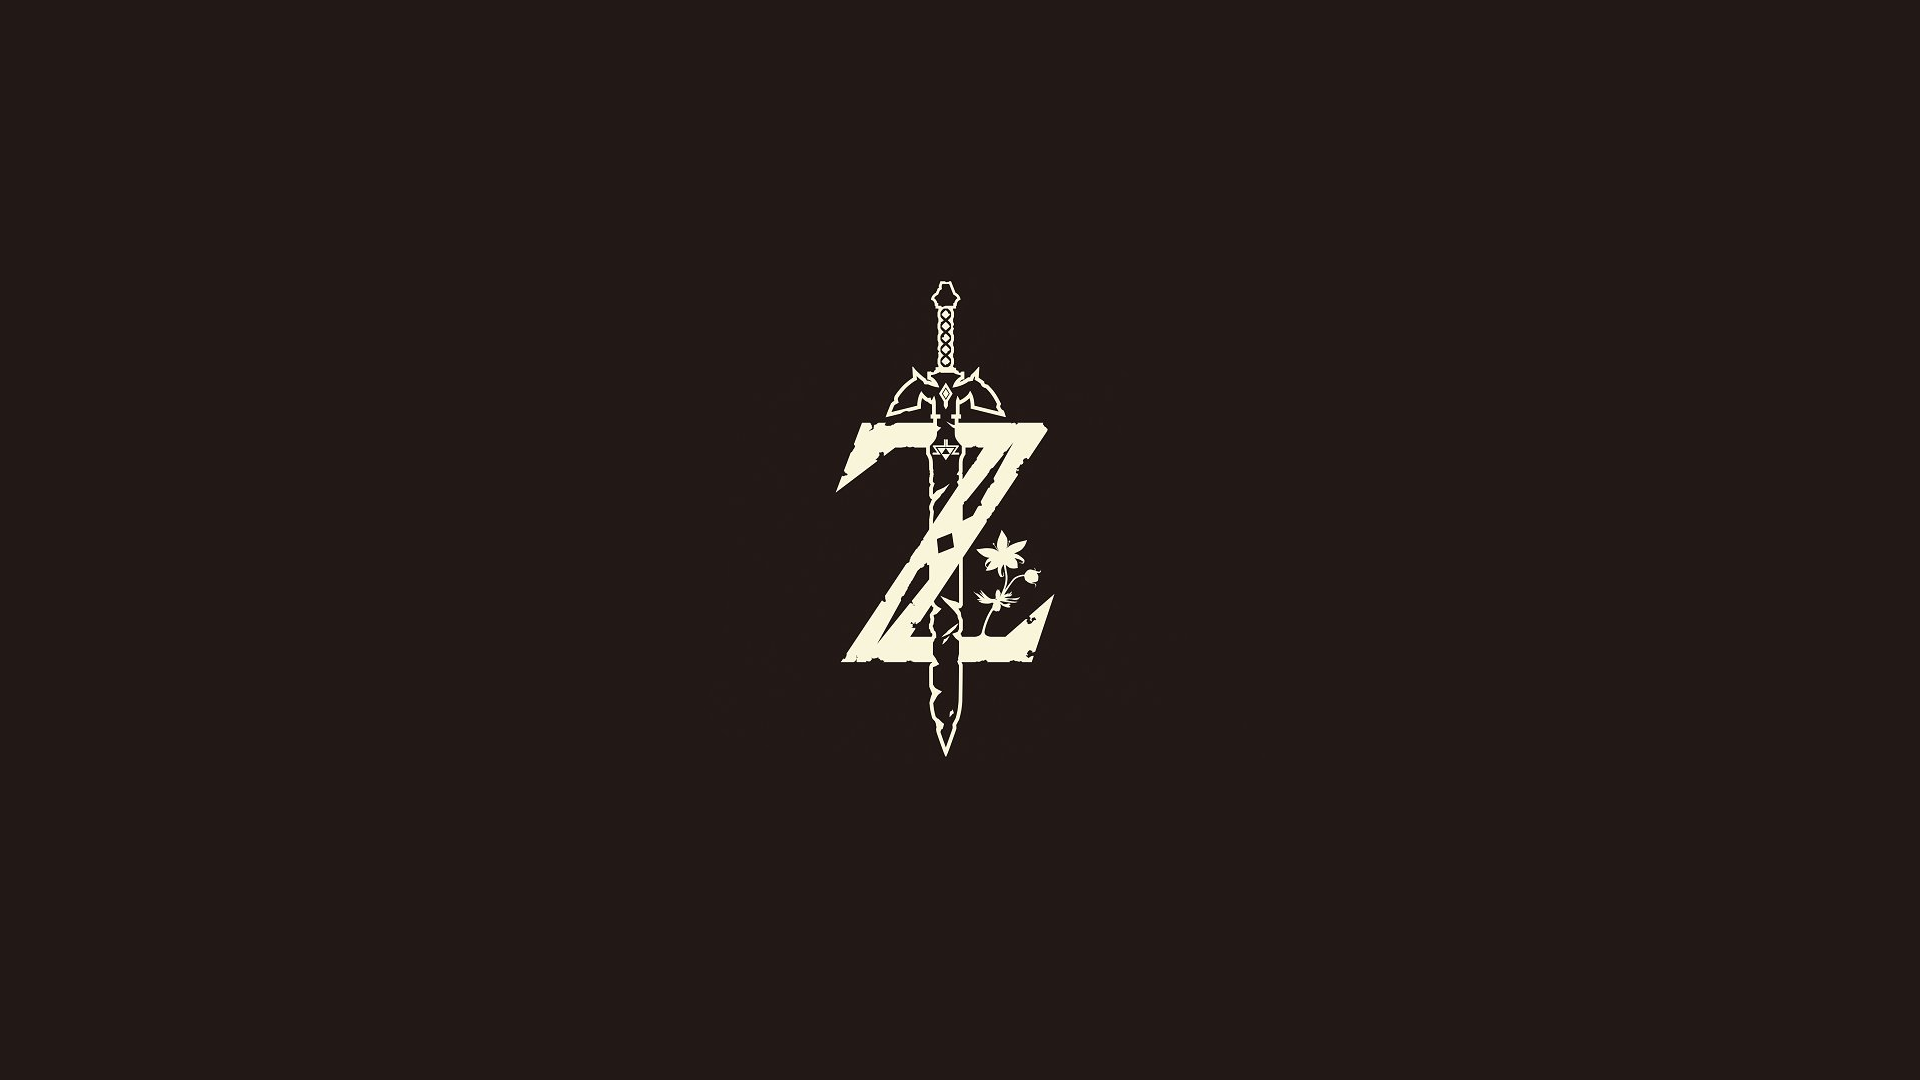 Legend of Zelda Breath of the Wild logo • /r/wallpapers